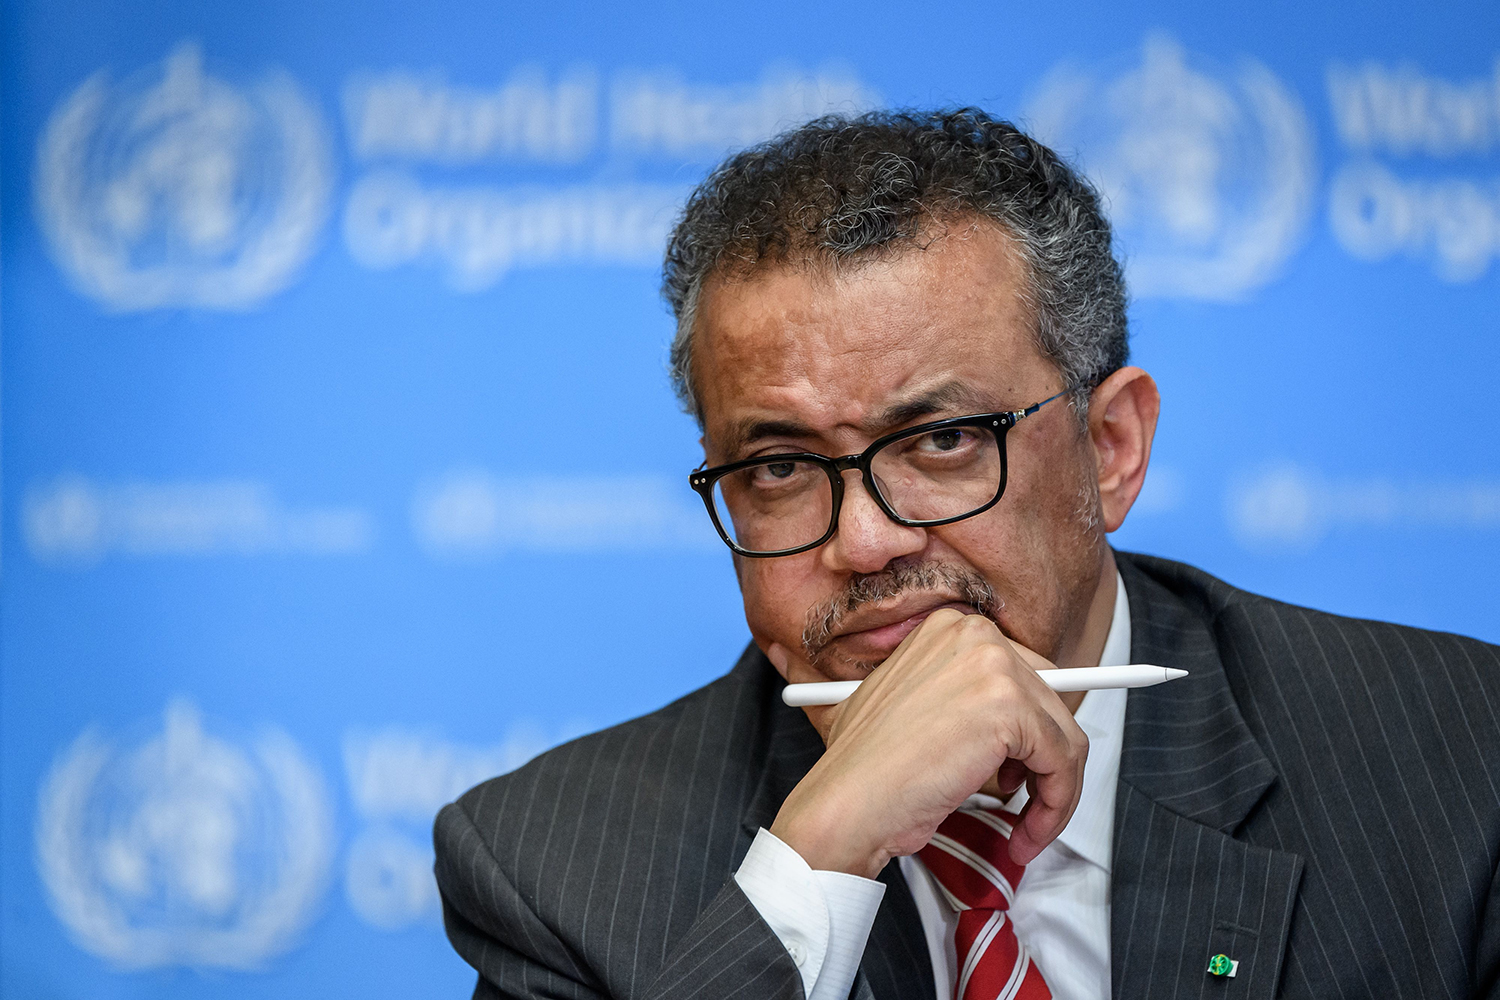 World Health Organization Director-General Tedros Adhanom Ghebreyesus attends a news briefing on the coronavirus in Geneva on March 11, the day the WHO classified the outbreak a pandemic.